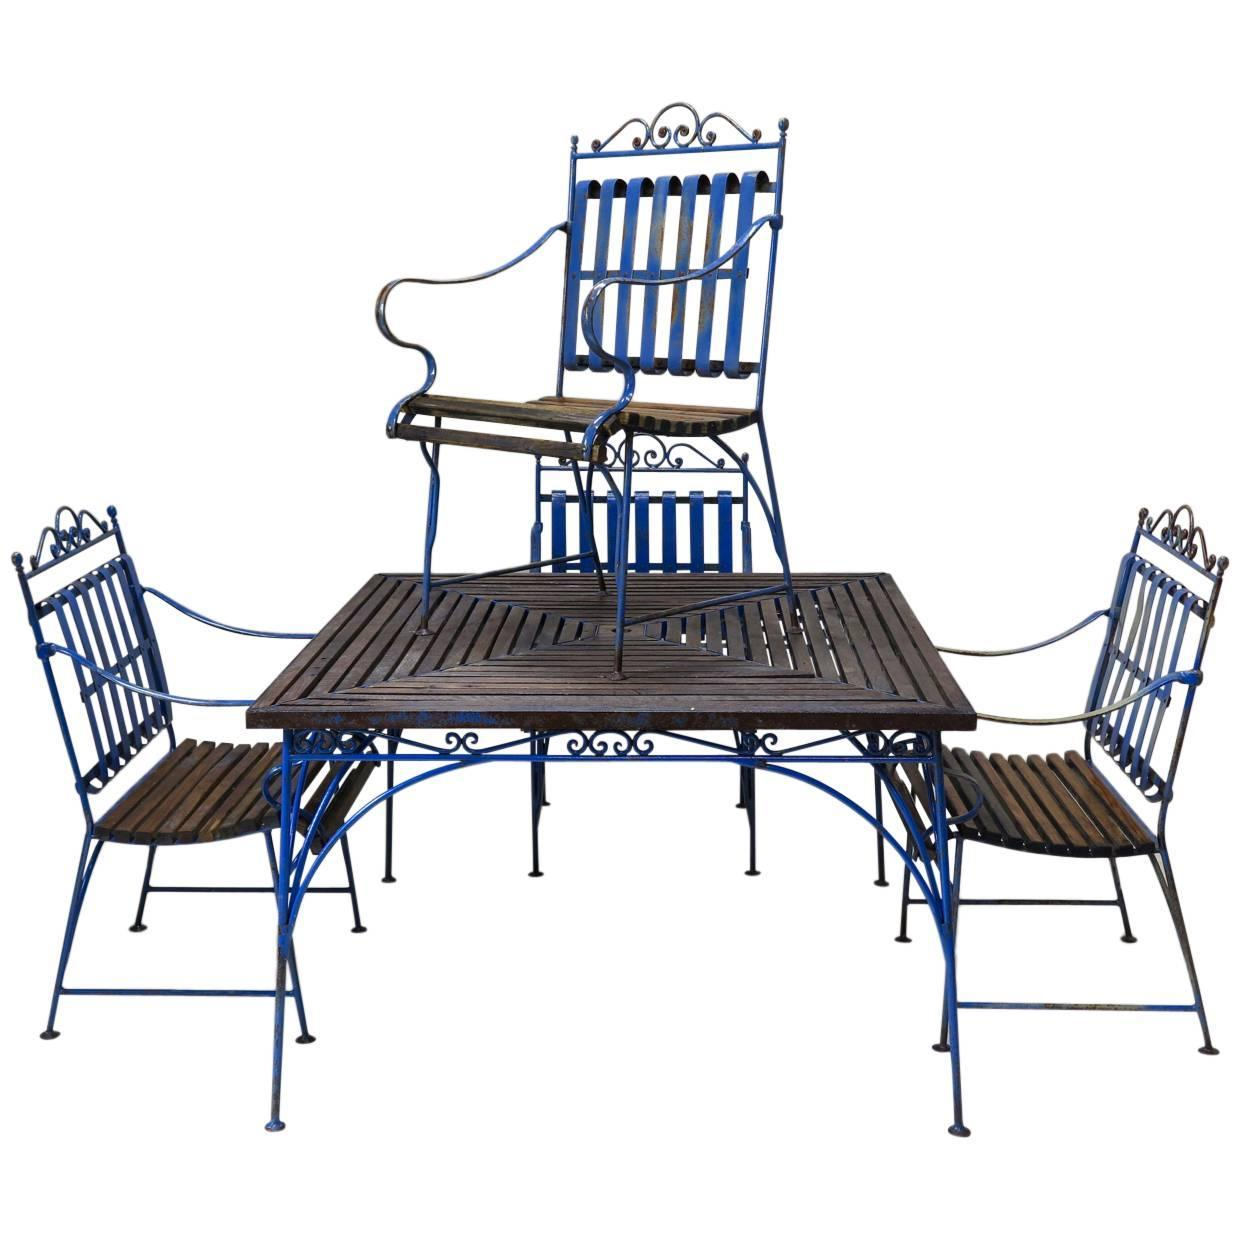 Salon De Jardin Made In France Lovely French 1930s Wrought Iron And Wood Garden Table With Four Armchairs